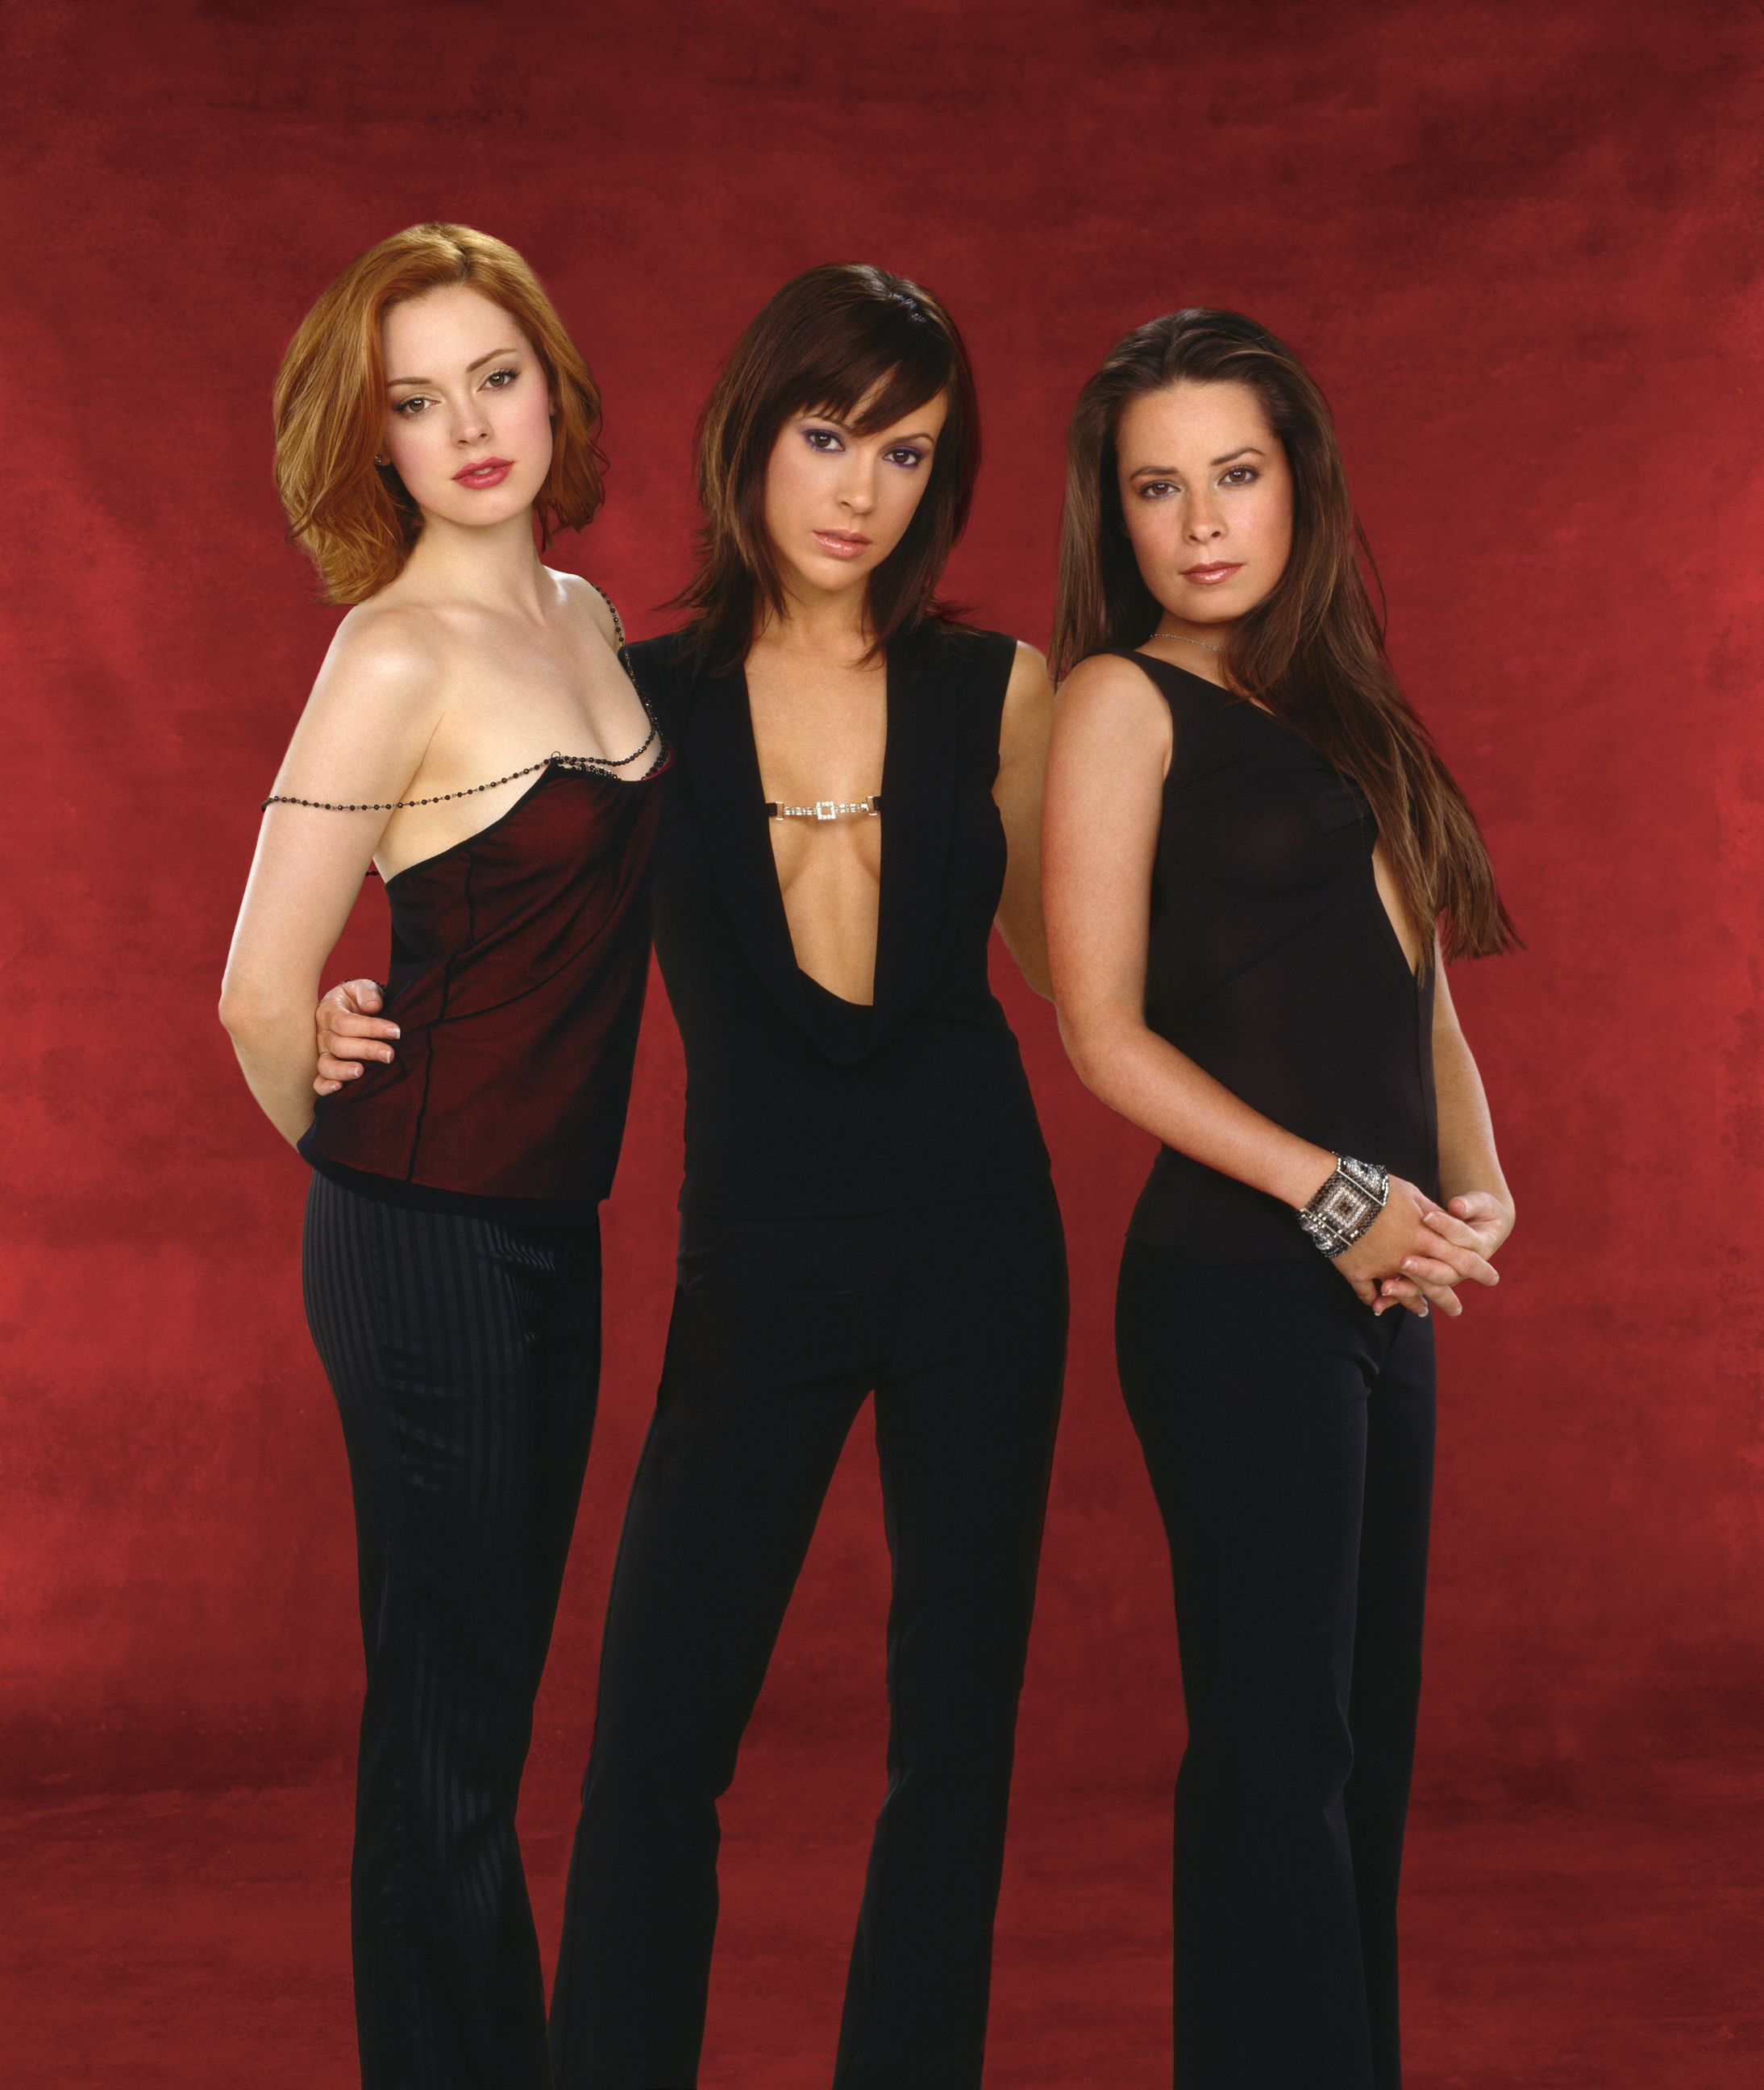 Alyssa Milano Movie Scenes charmed.i loved watching charmed. please check out my